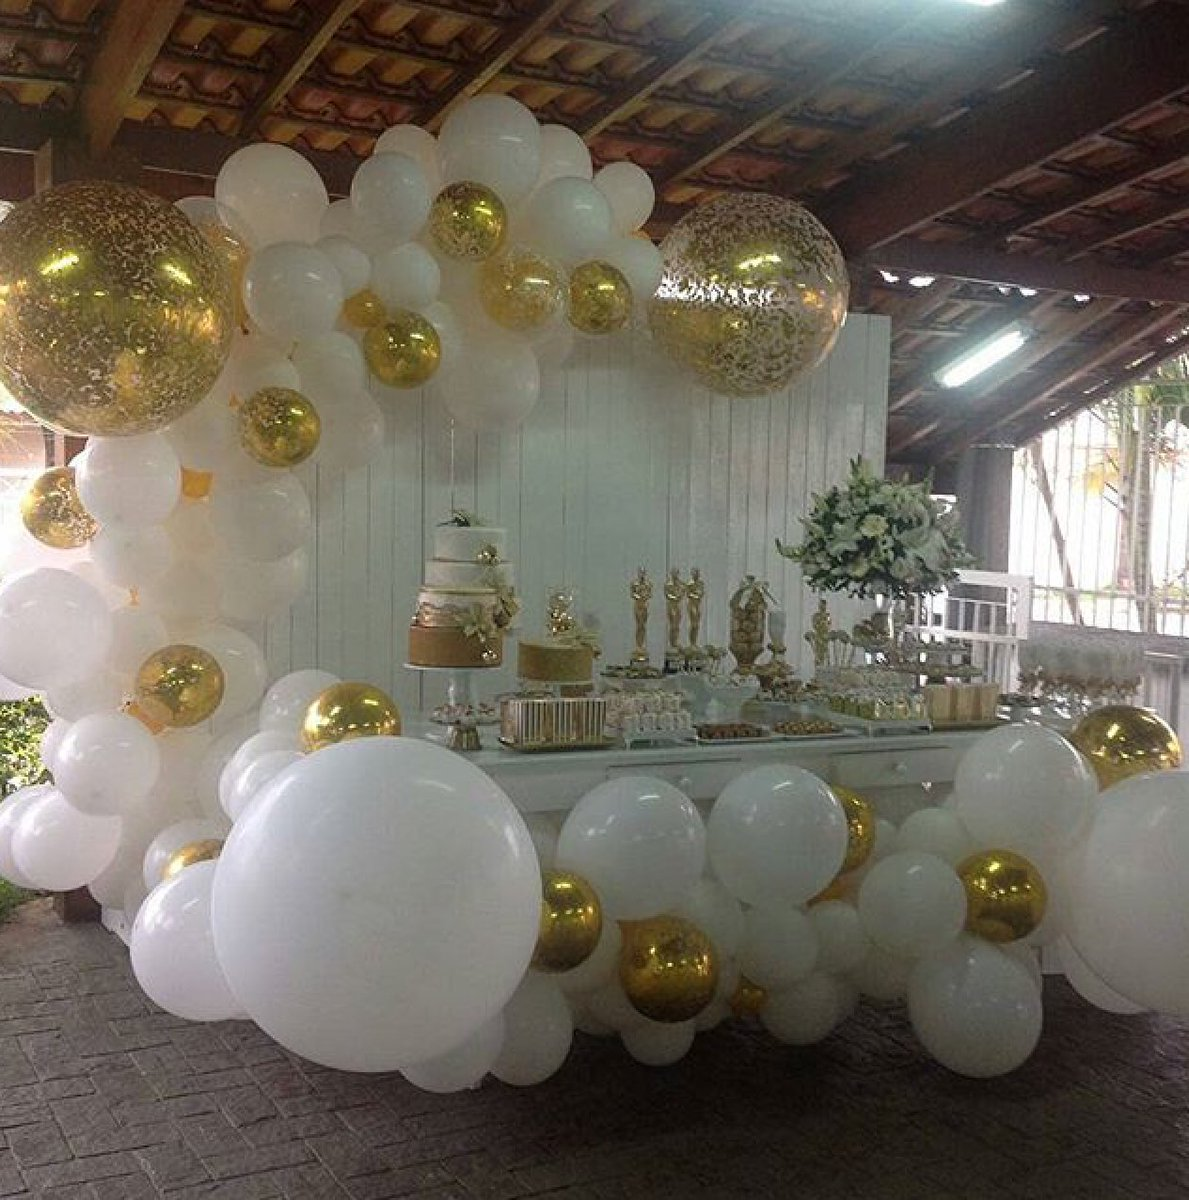 Style Your Moment On Twitter Gold And White Balloon Garland I Am In Love With It Dia Defesta Did Awesome Goldparty Whiteandgold Partyideas Balloongarland Celebrations Birthdayideas Styleyourmoment Https T Co Stpp1biin3